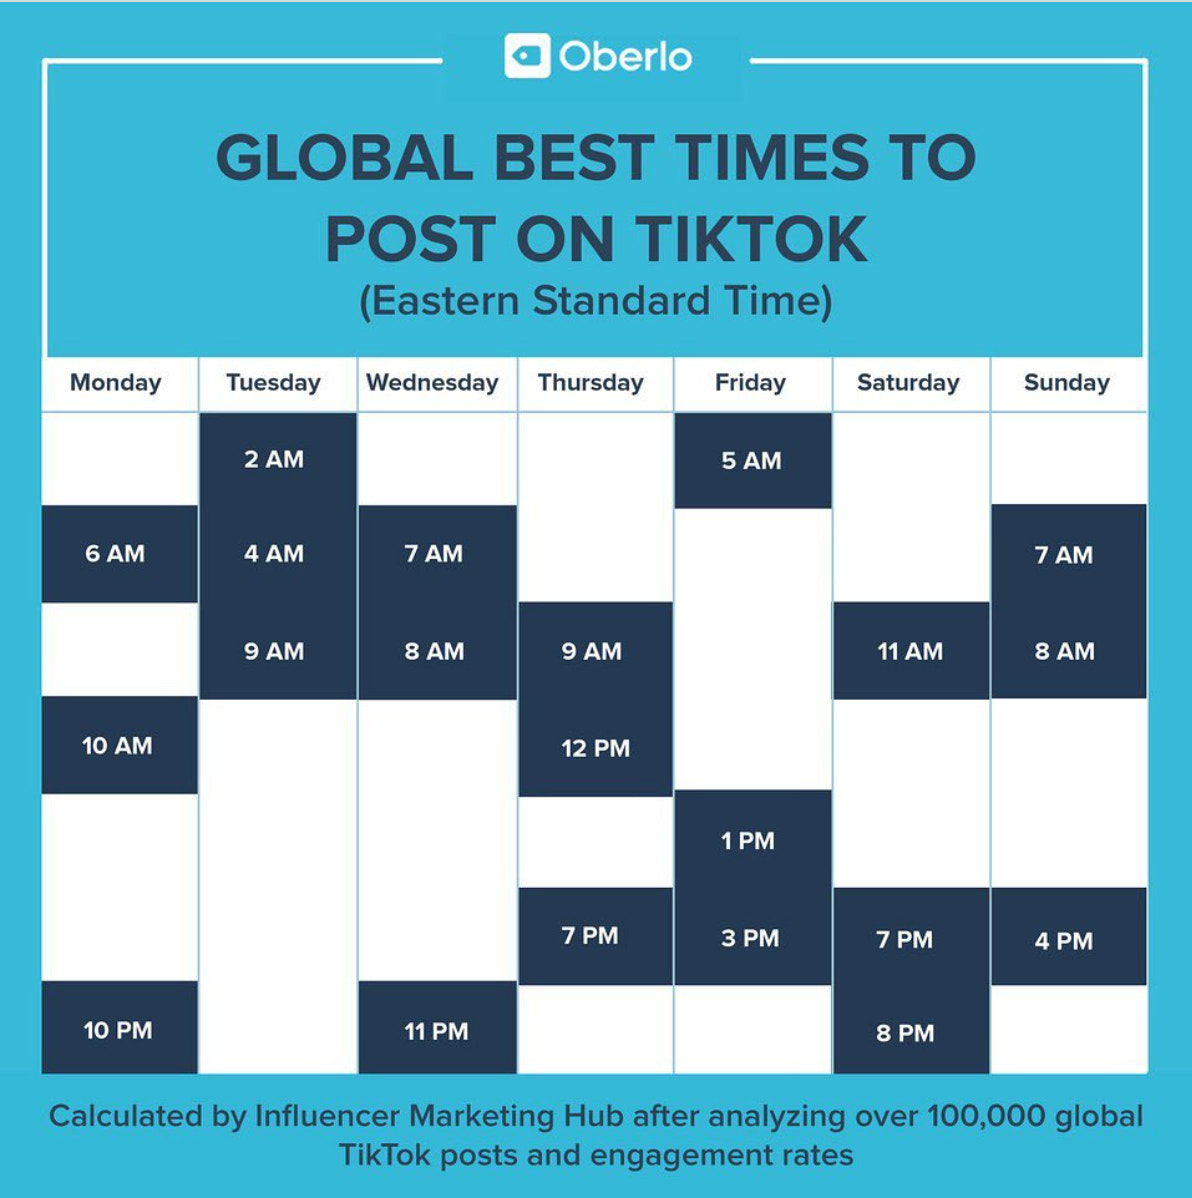 A schedule of optimal posting times on TikTok